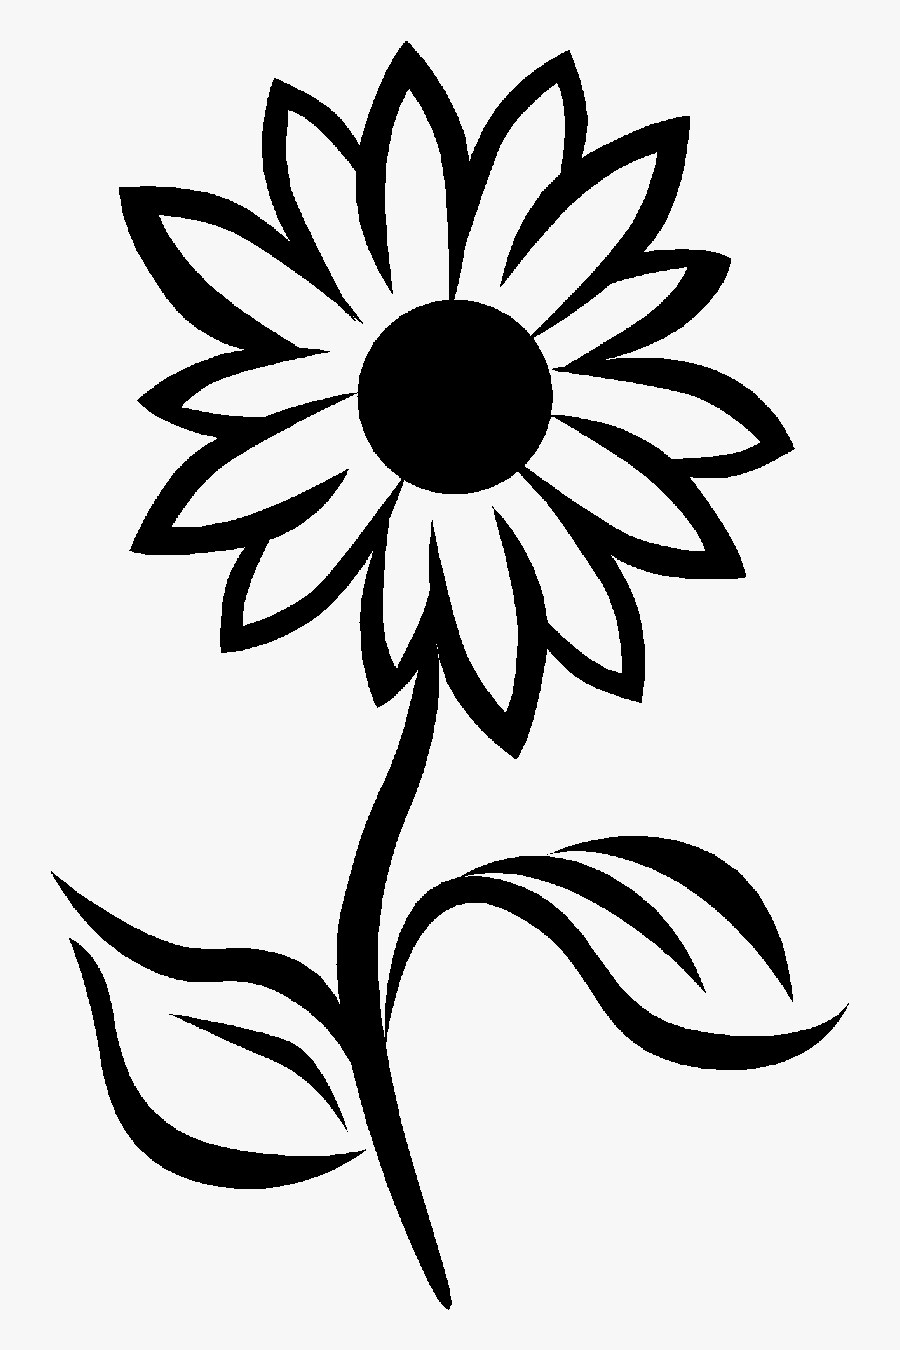 Sun Black And White Clipart Small.